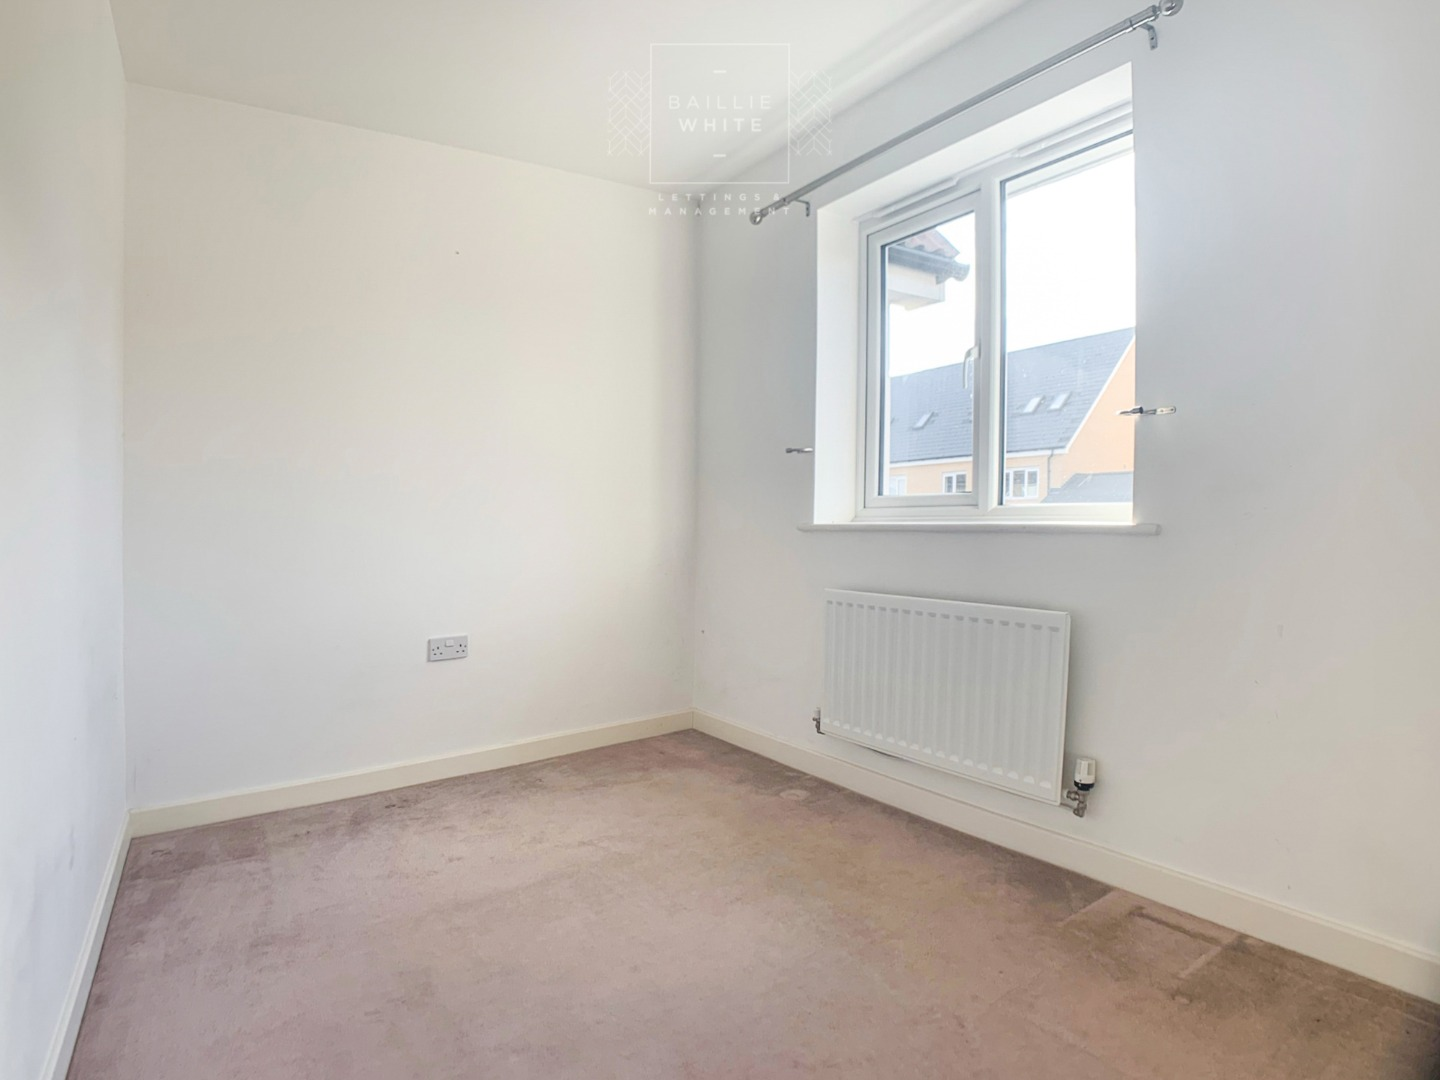 2 bed apartment to rent in Liddell Drive, Basildon SS14 11